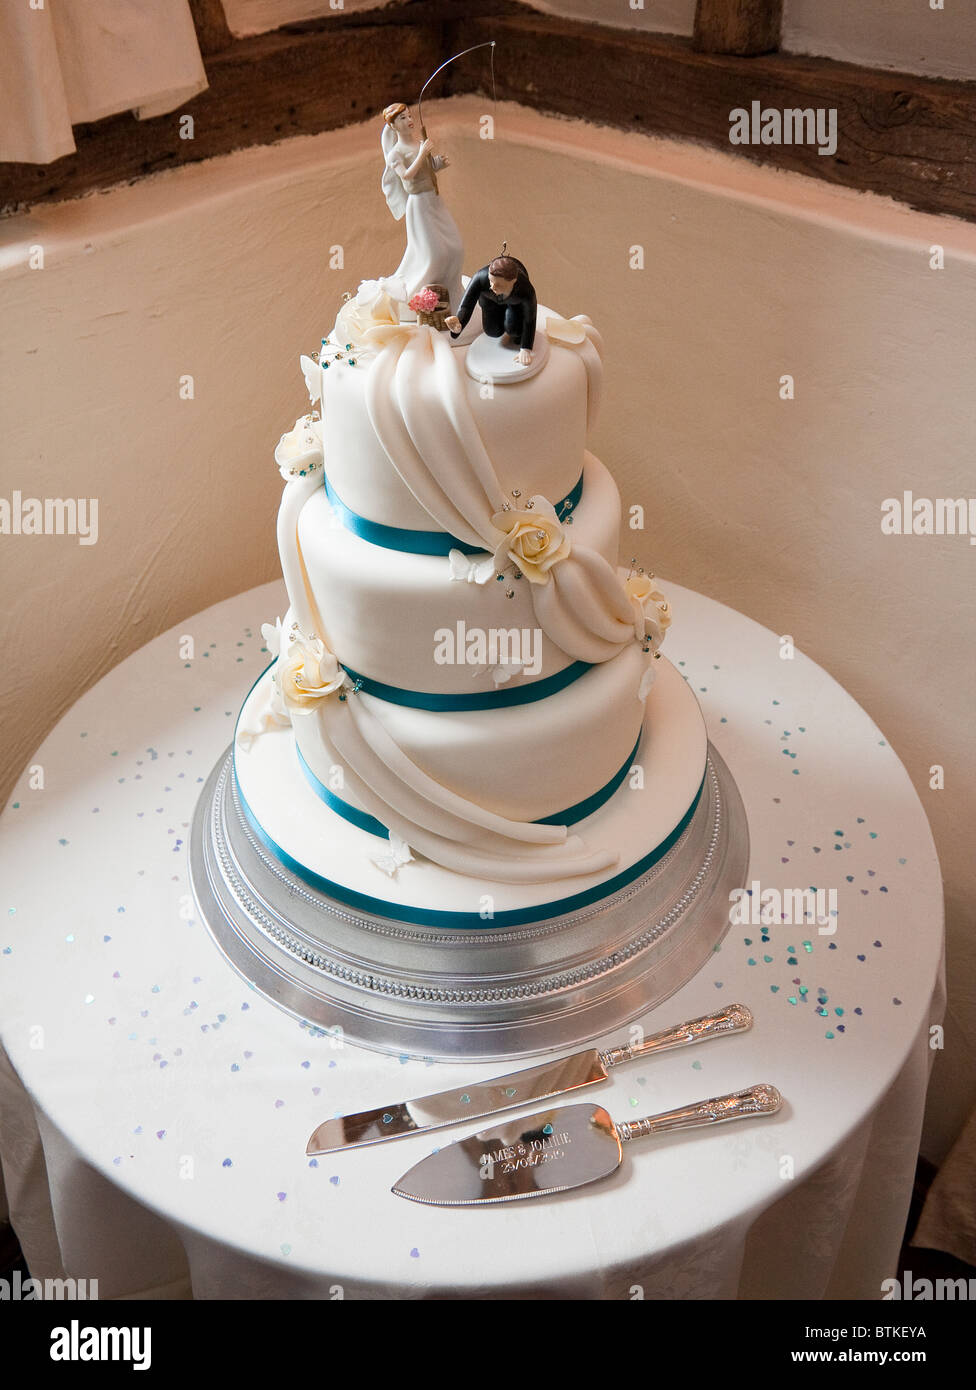 Wedding Cake Top Decoration Of Bride Catching Groom Stock Photo Alamy